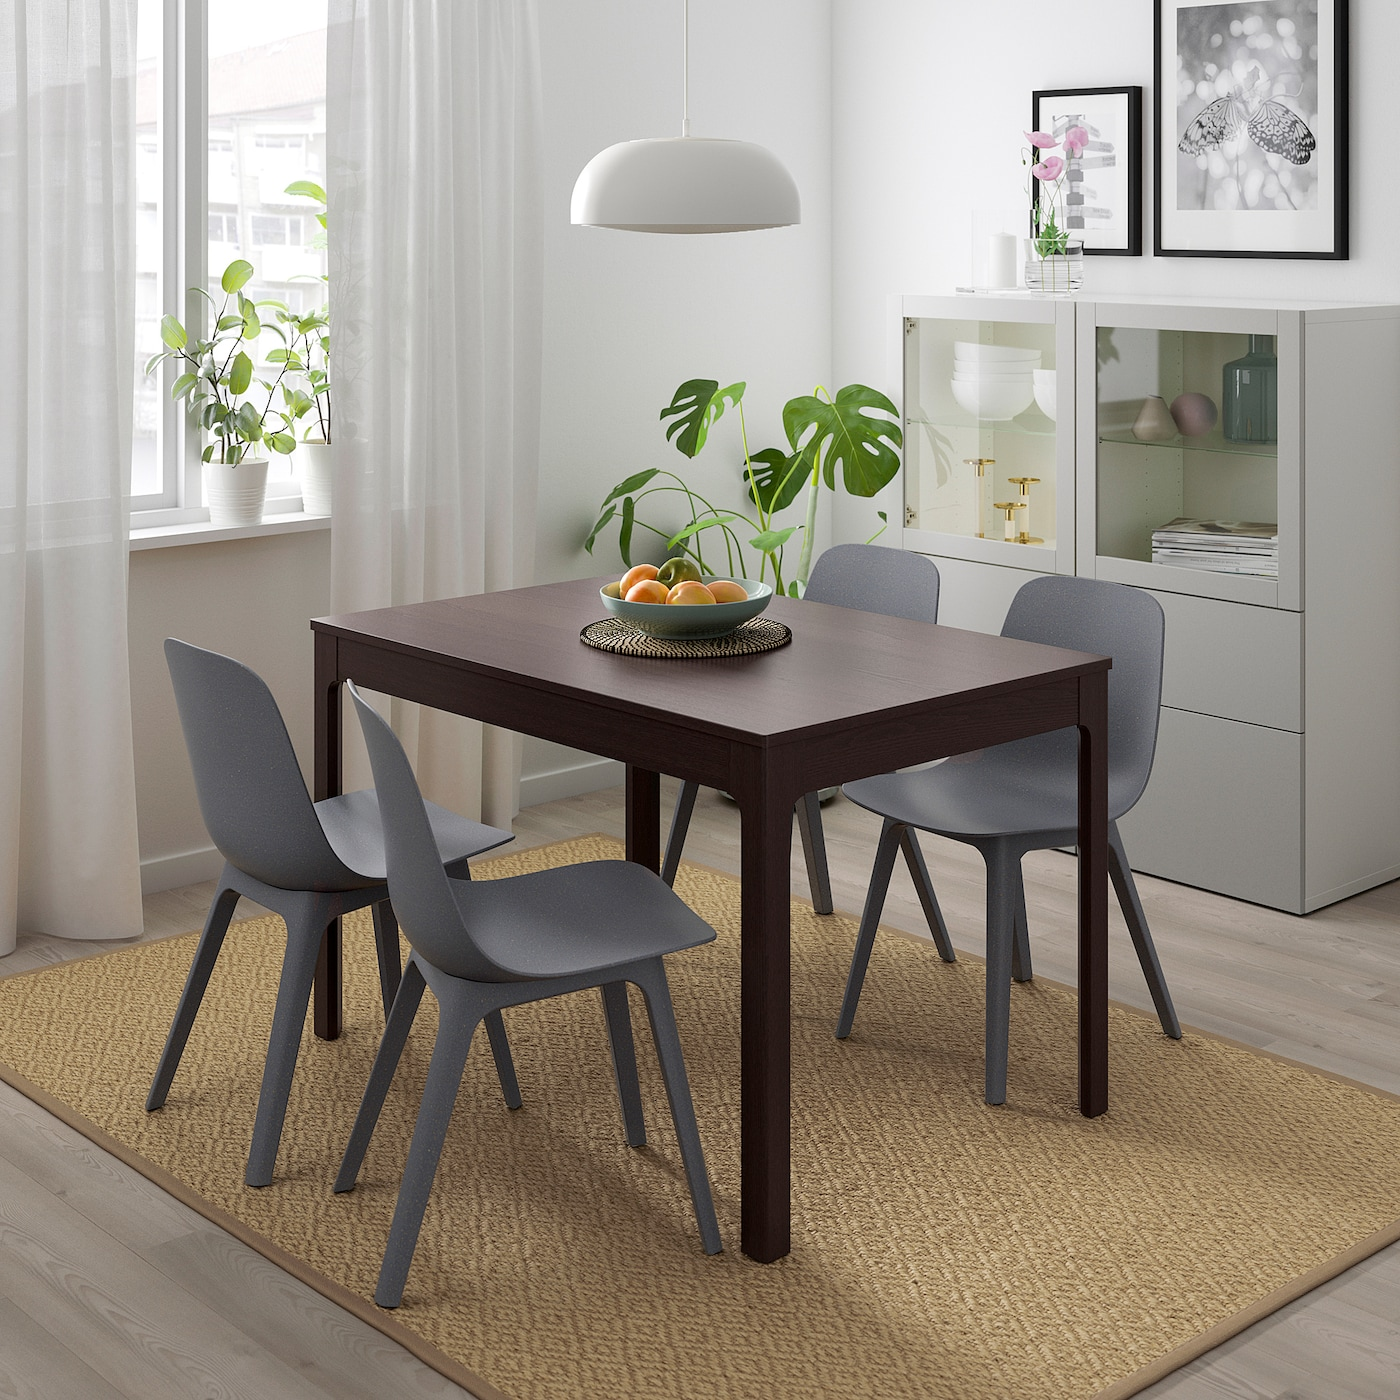 2cf4807244f IKEA ODGER EKEDALEN table and 4 chairs Can be easily extended by one person.